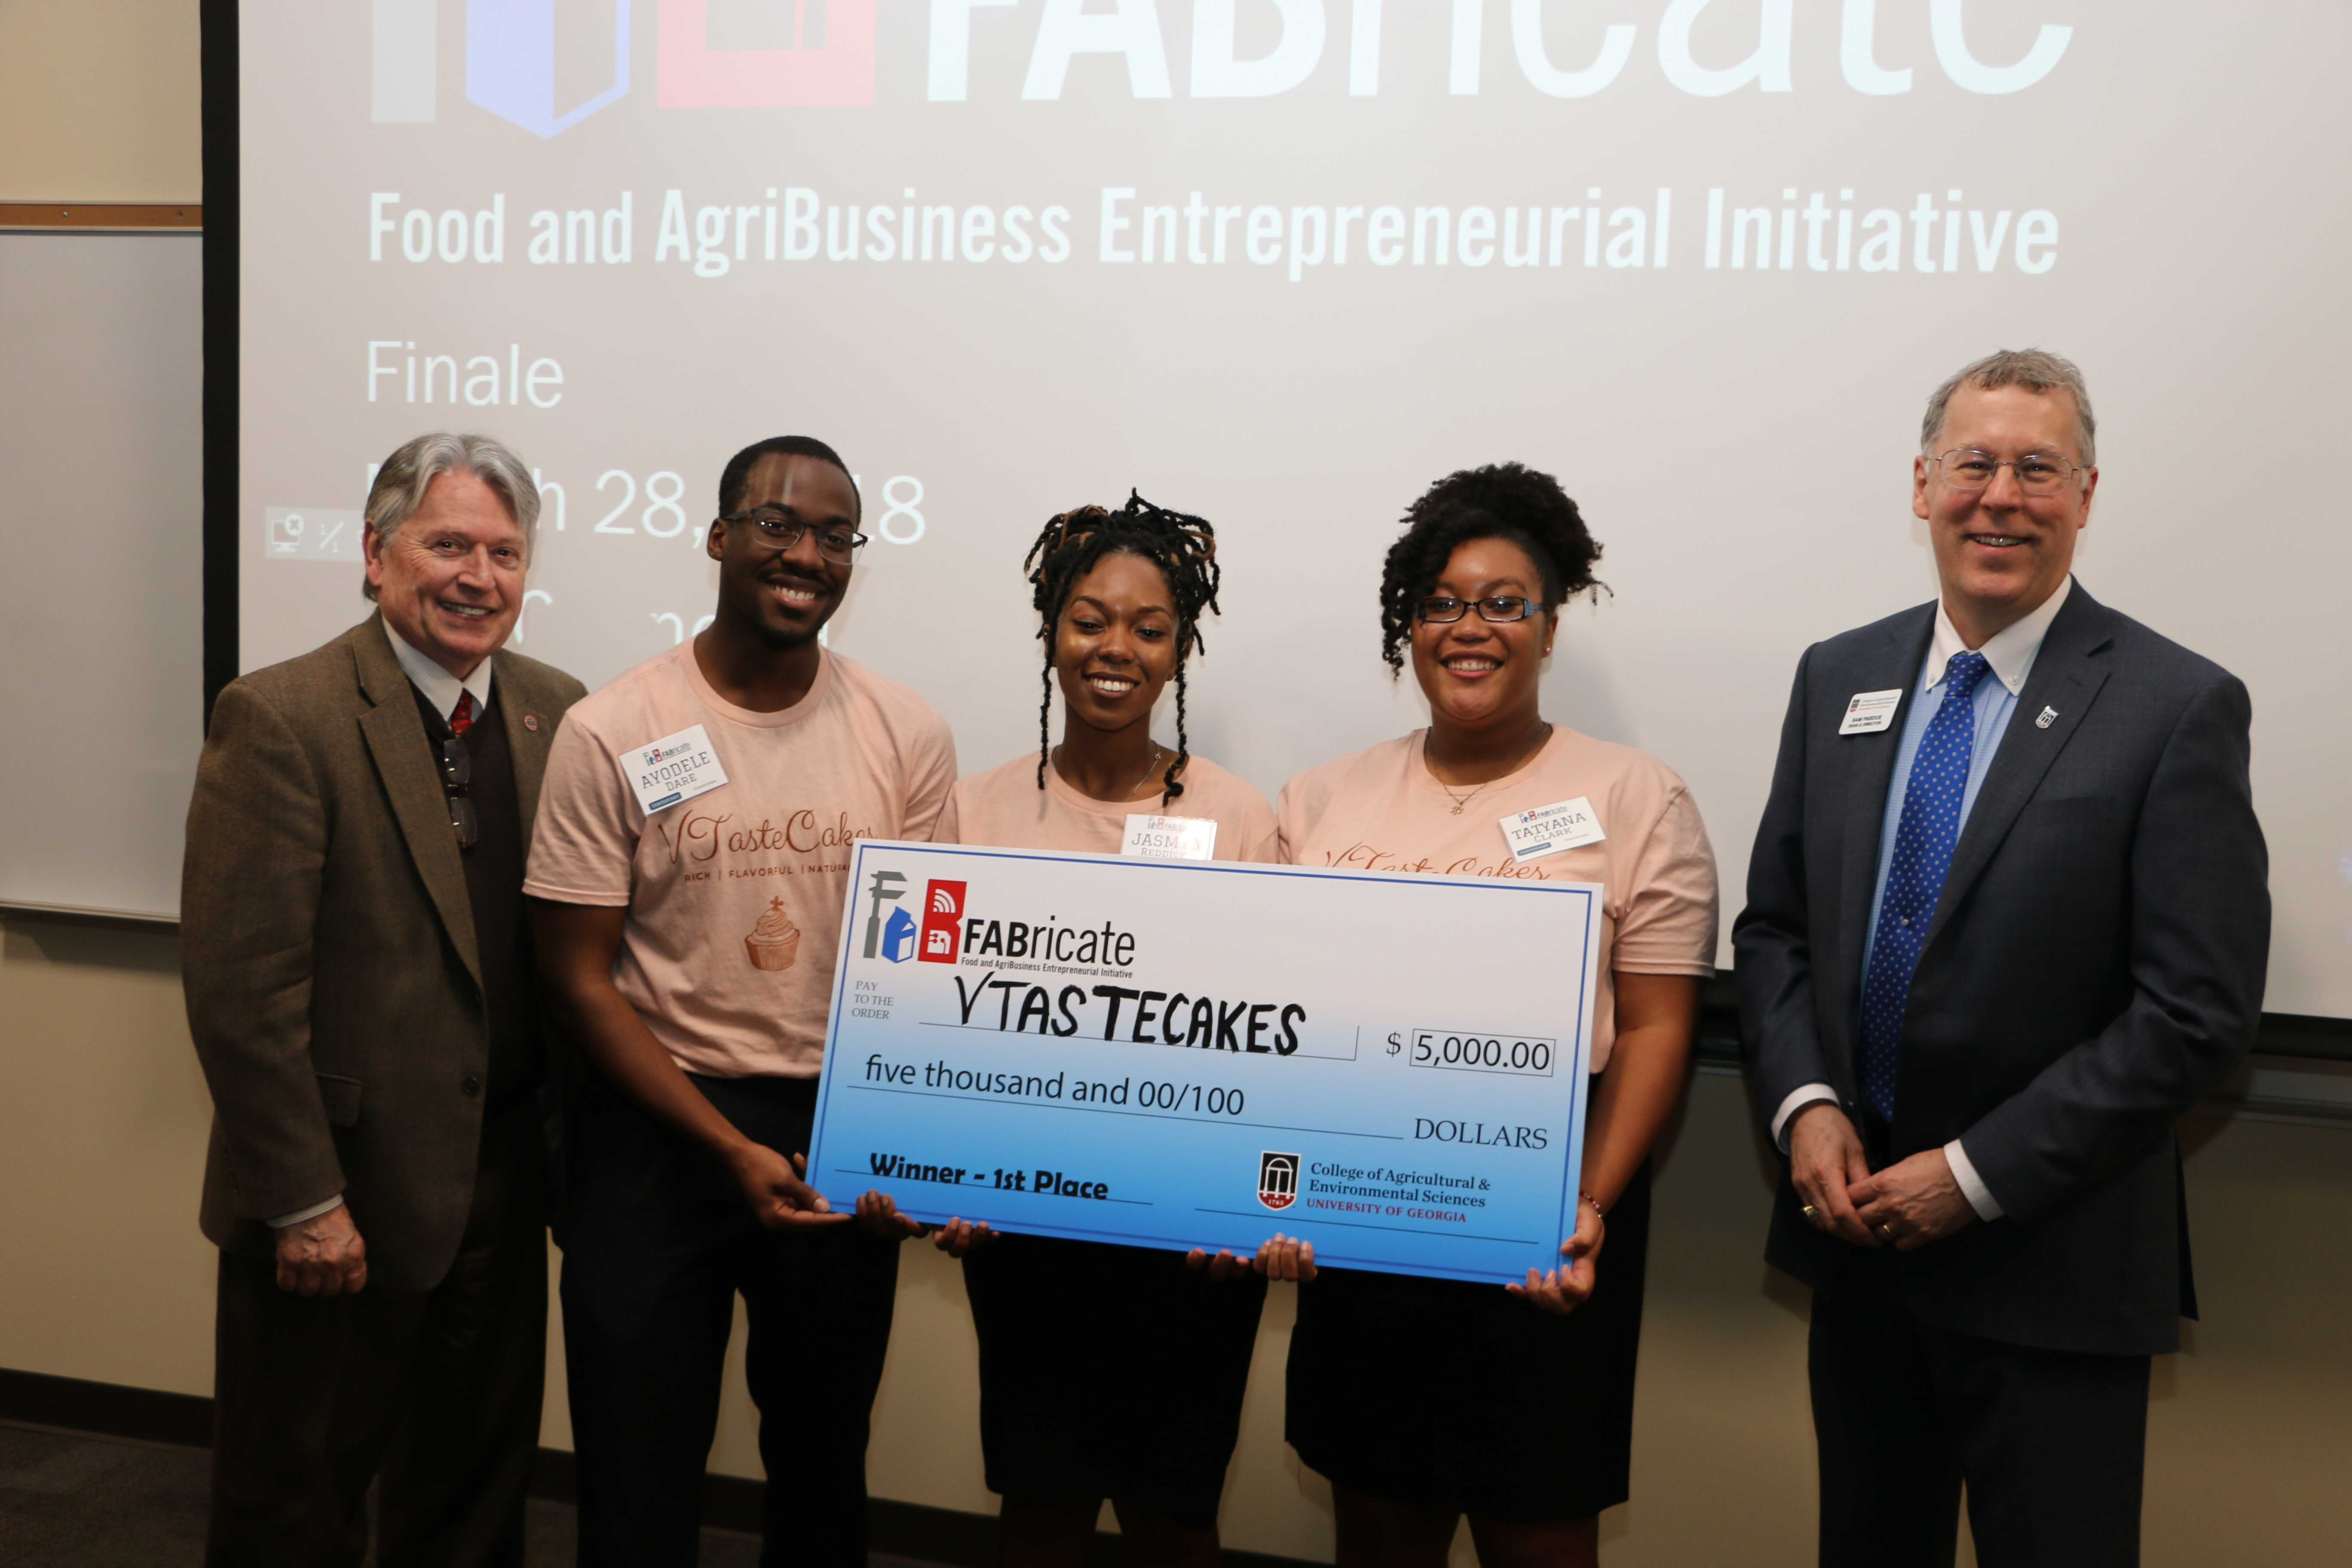 Josef Broder, UGA College of Agricultural and Environmental Sciences associate dean for academic affairs, congratulates VTasteCakes founders Ayodele Dare, Jasmyn Reddicks and Tatyana Clark, along with CAES Dean and Director Sam Pardue.